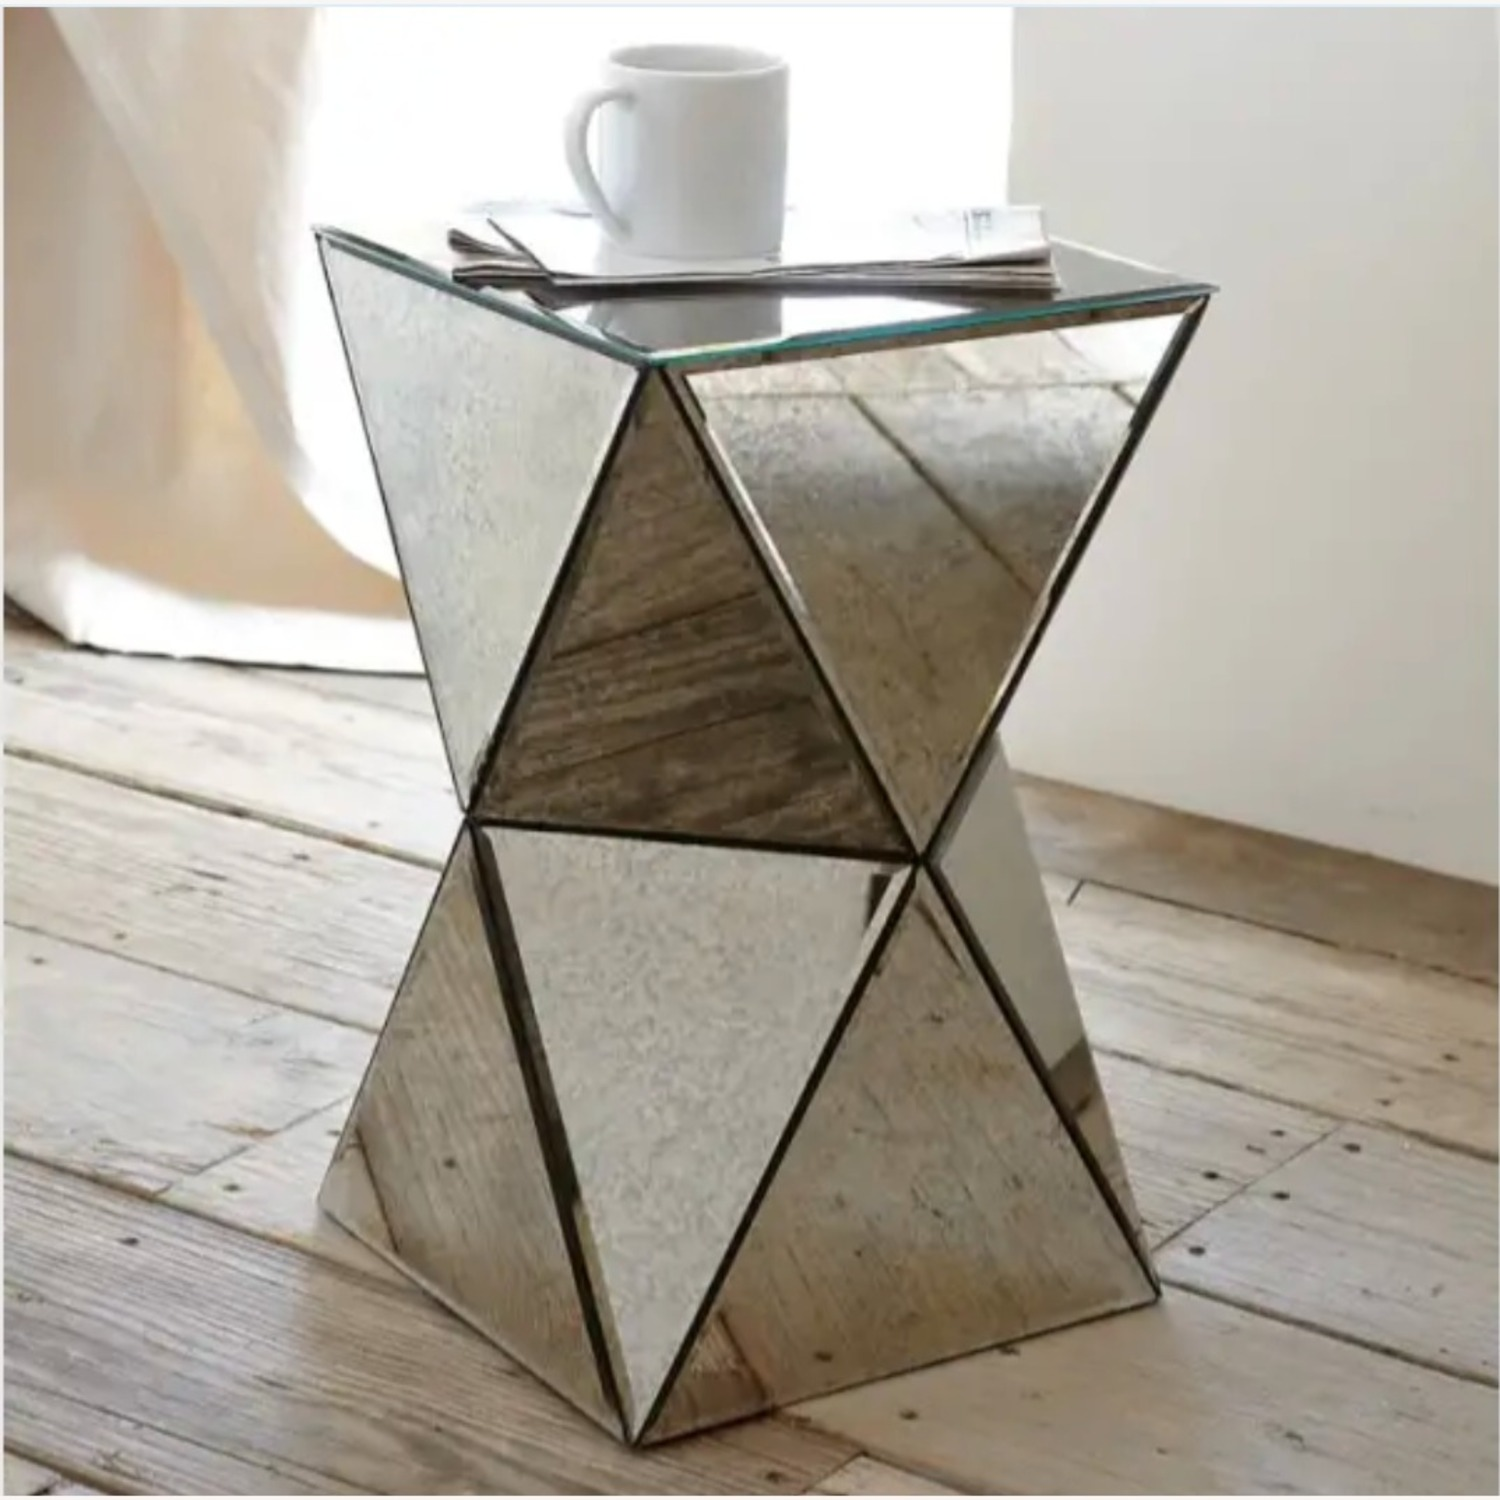 West Elm Faceted Mirror Side Table - image-1